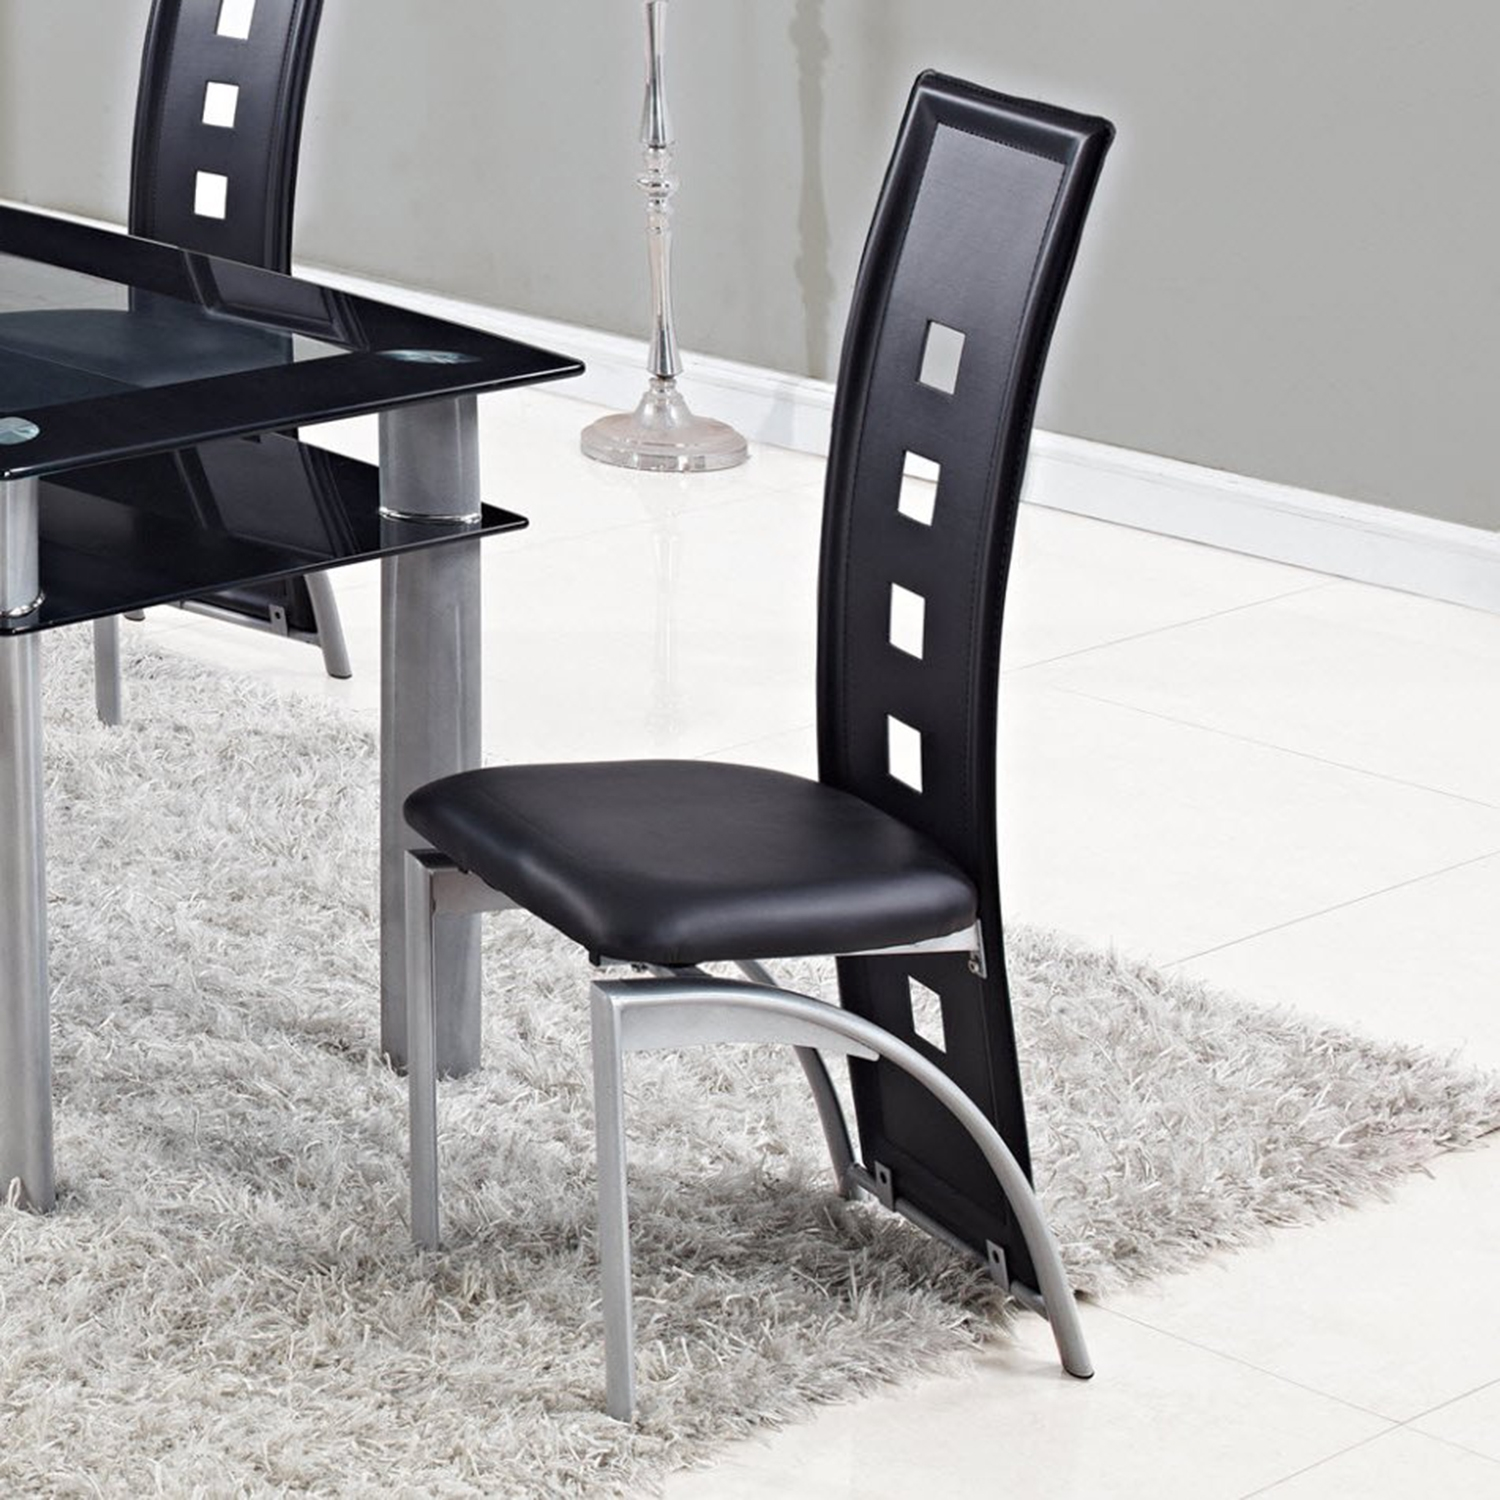 Colby 5-Piece Dining Set in Black - GLO-D1058NDT-D1058DC-M-SET